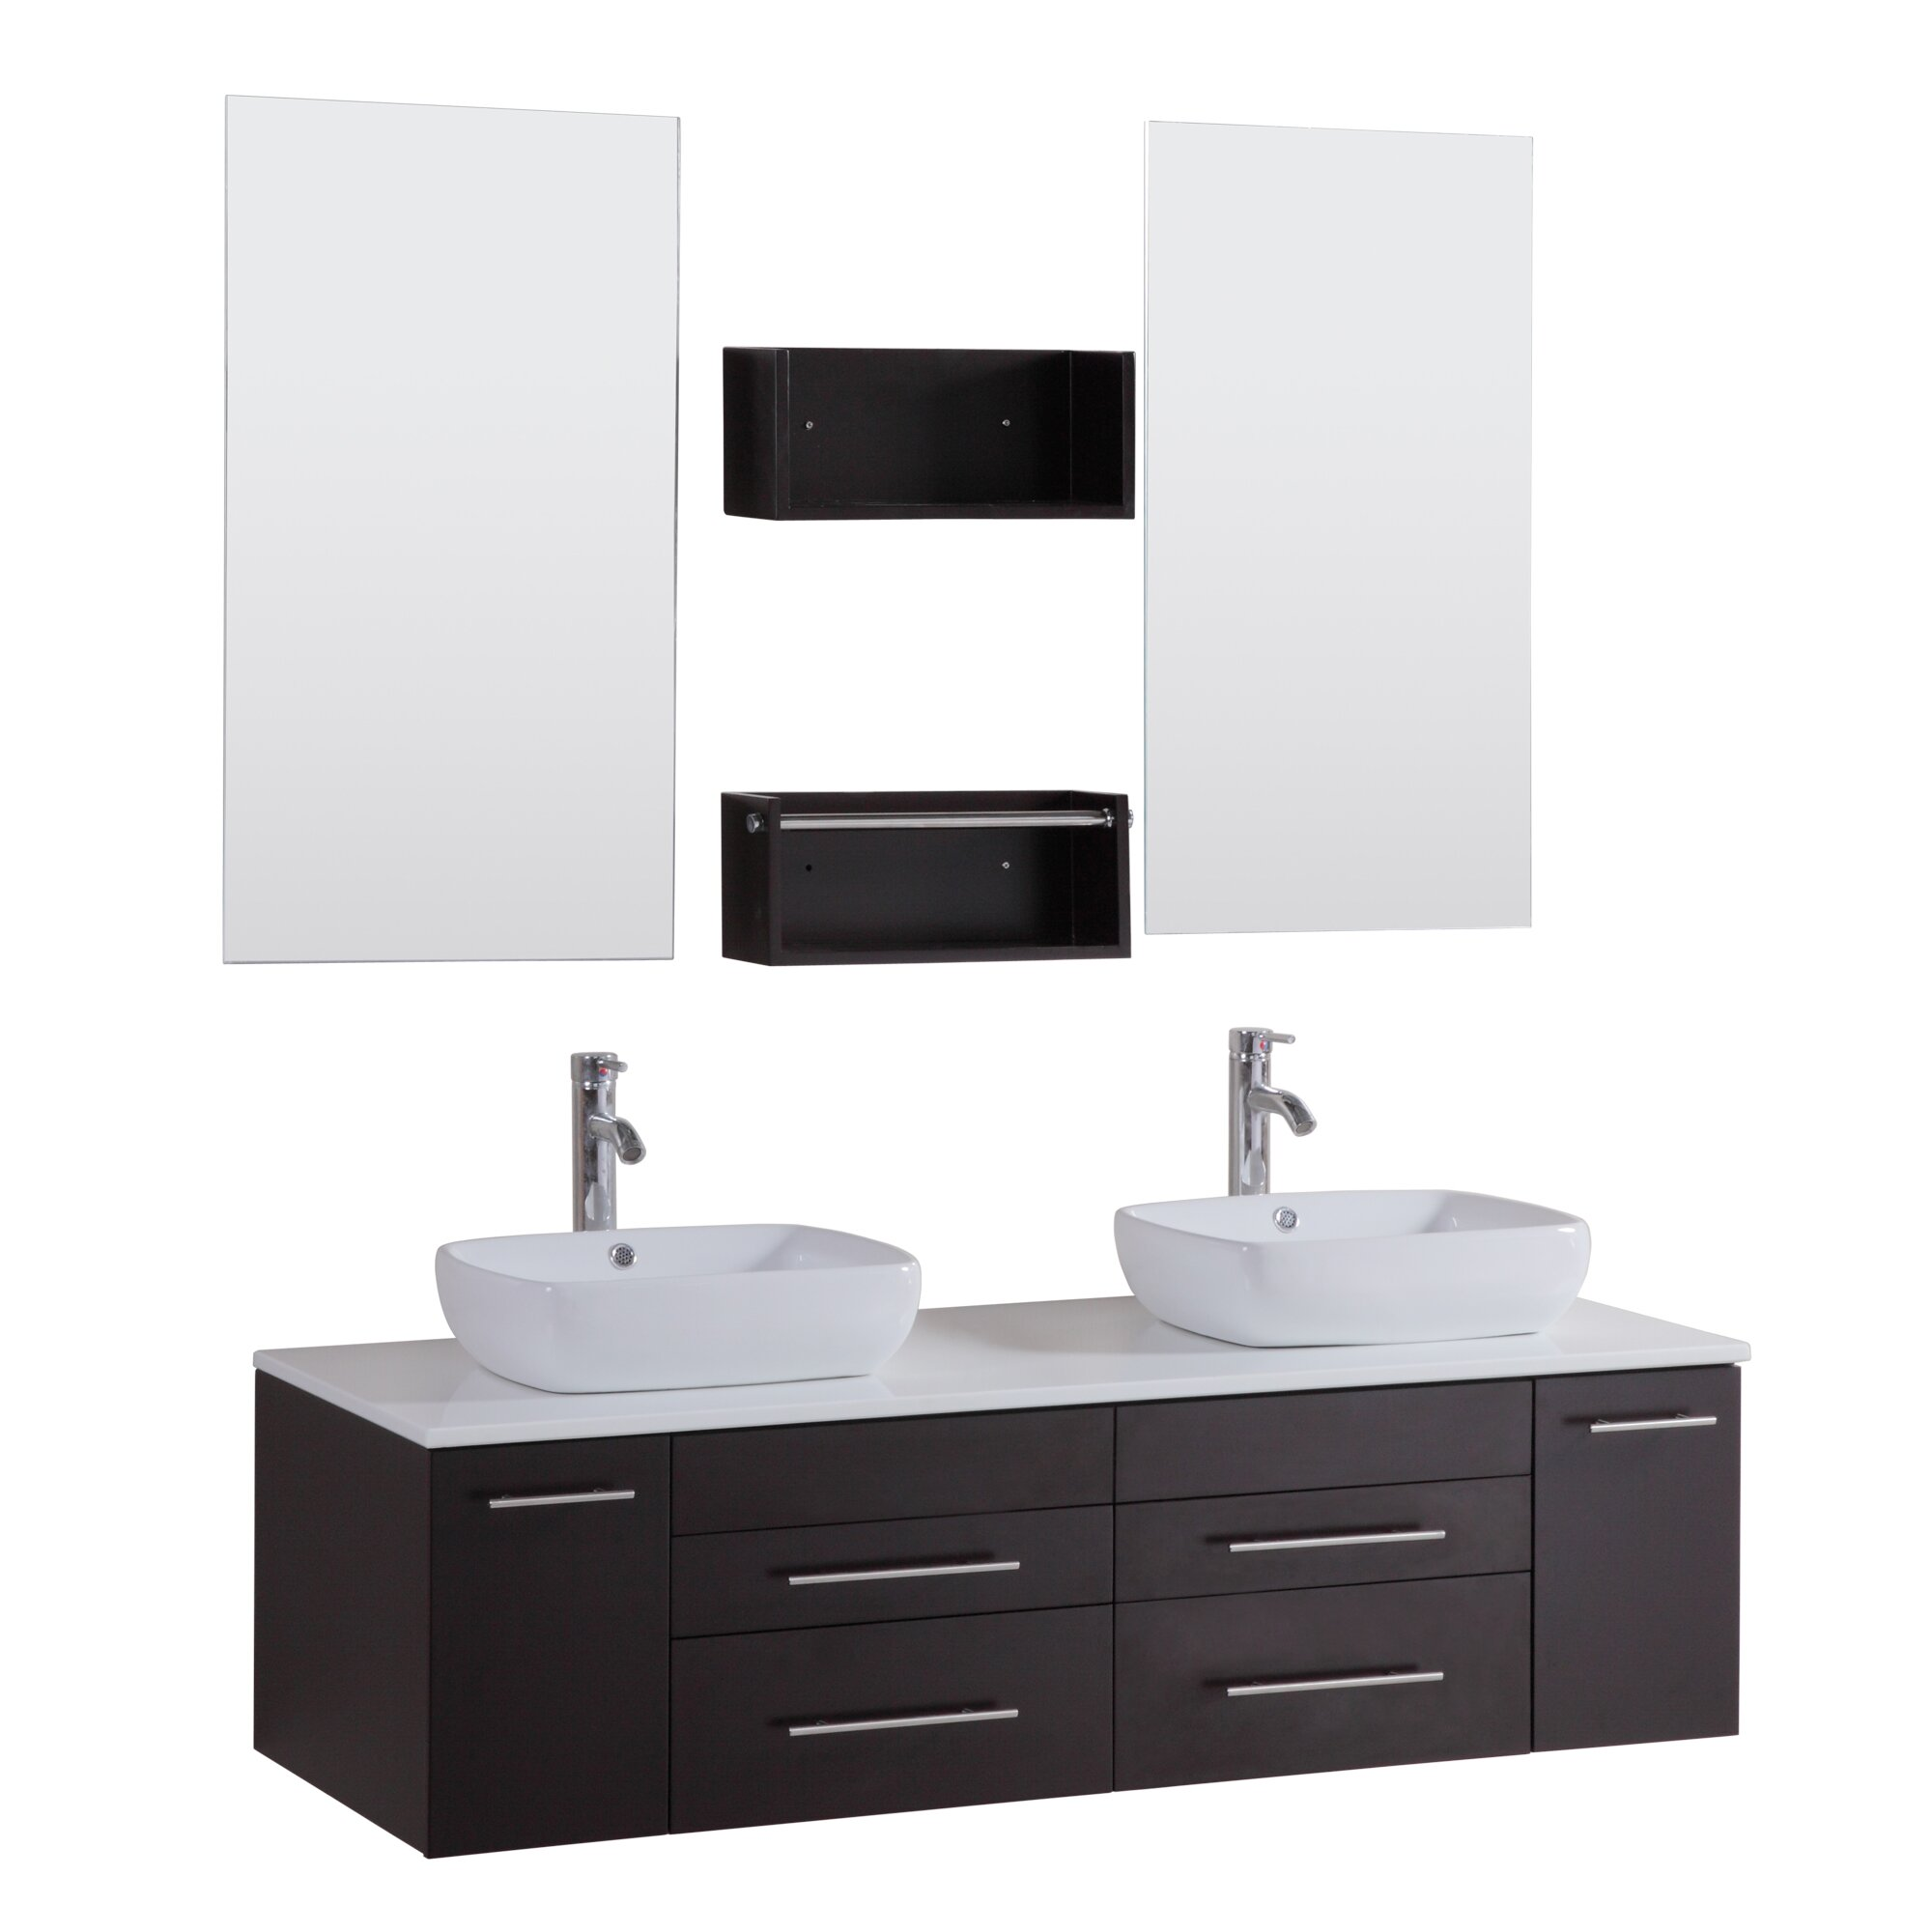 Floating Bathroom Cabinet dact